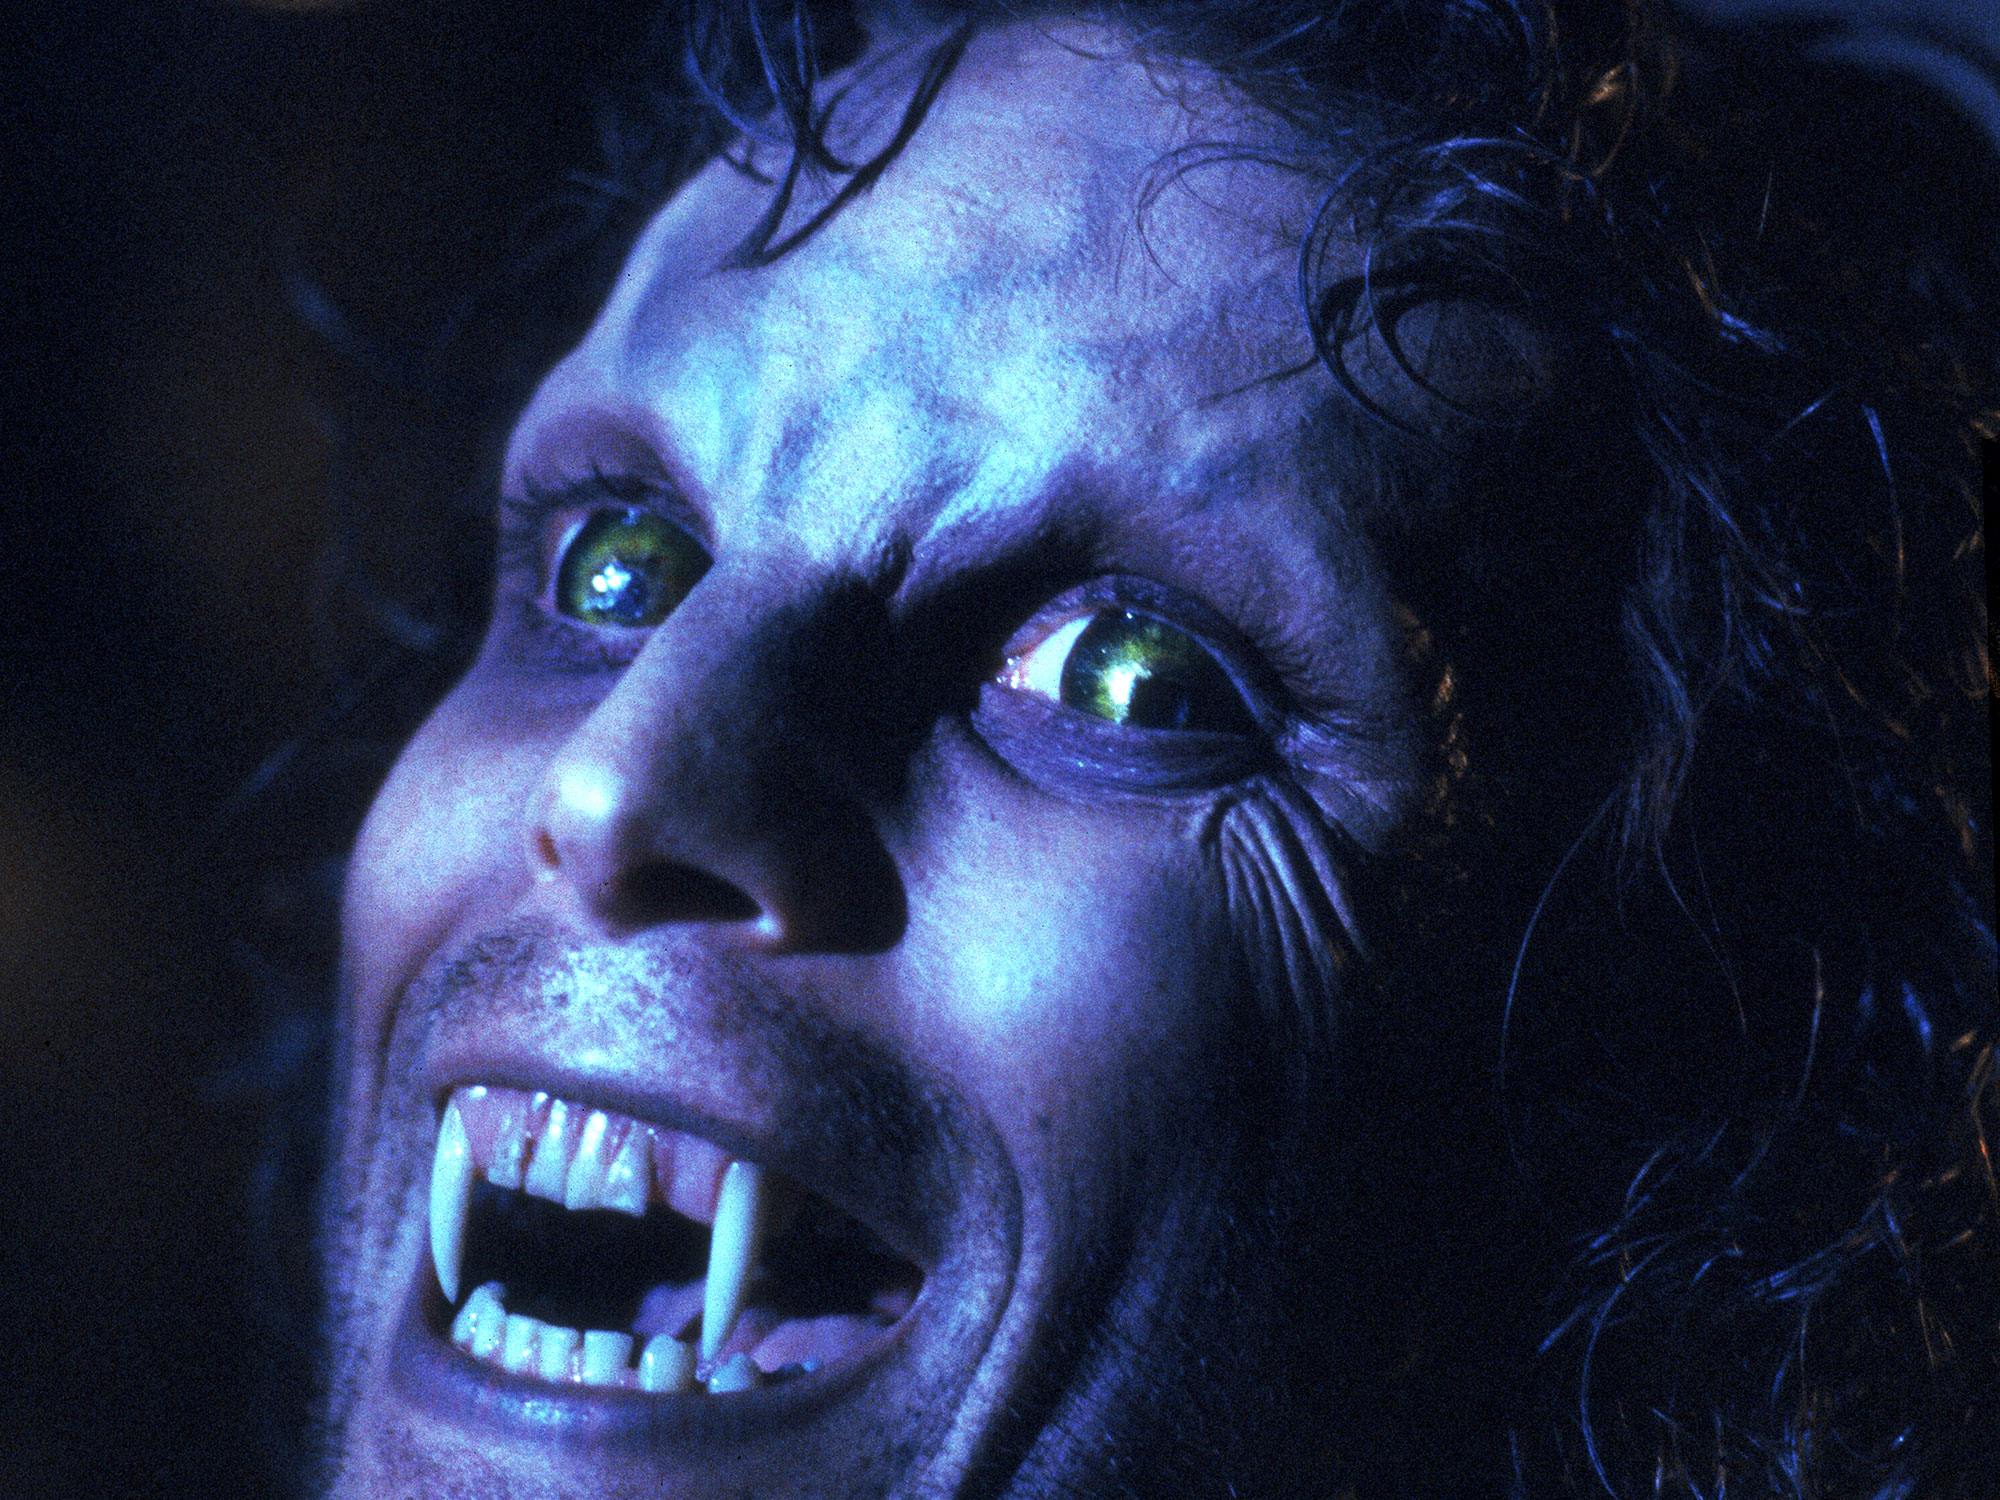 Is this the greatest werewolf movie ever made?